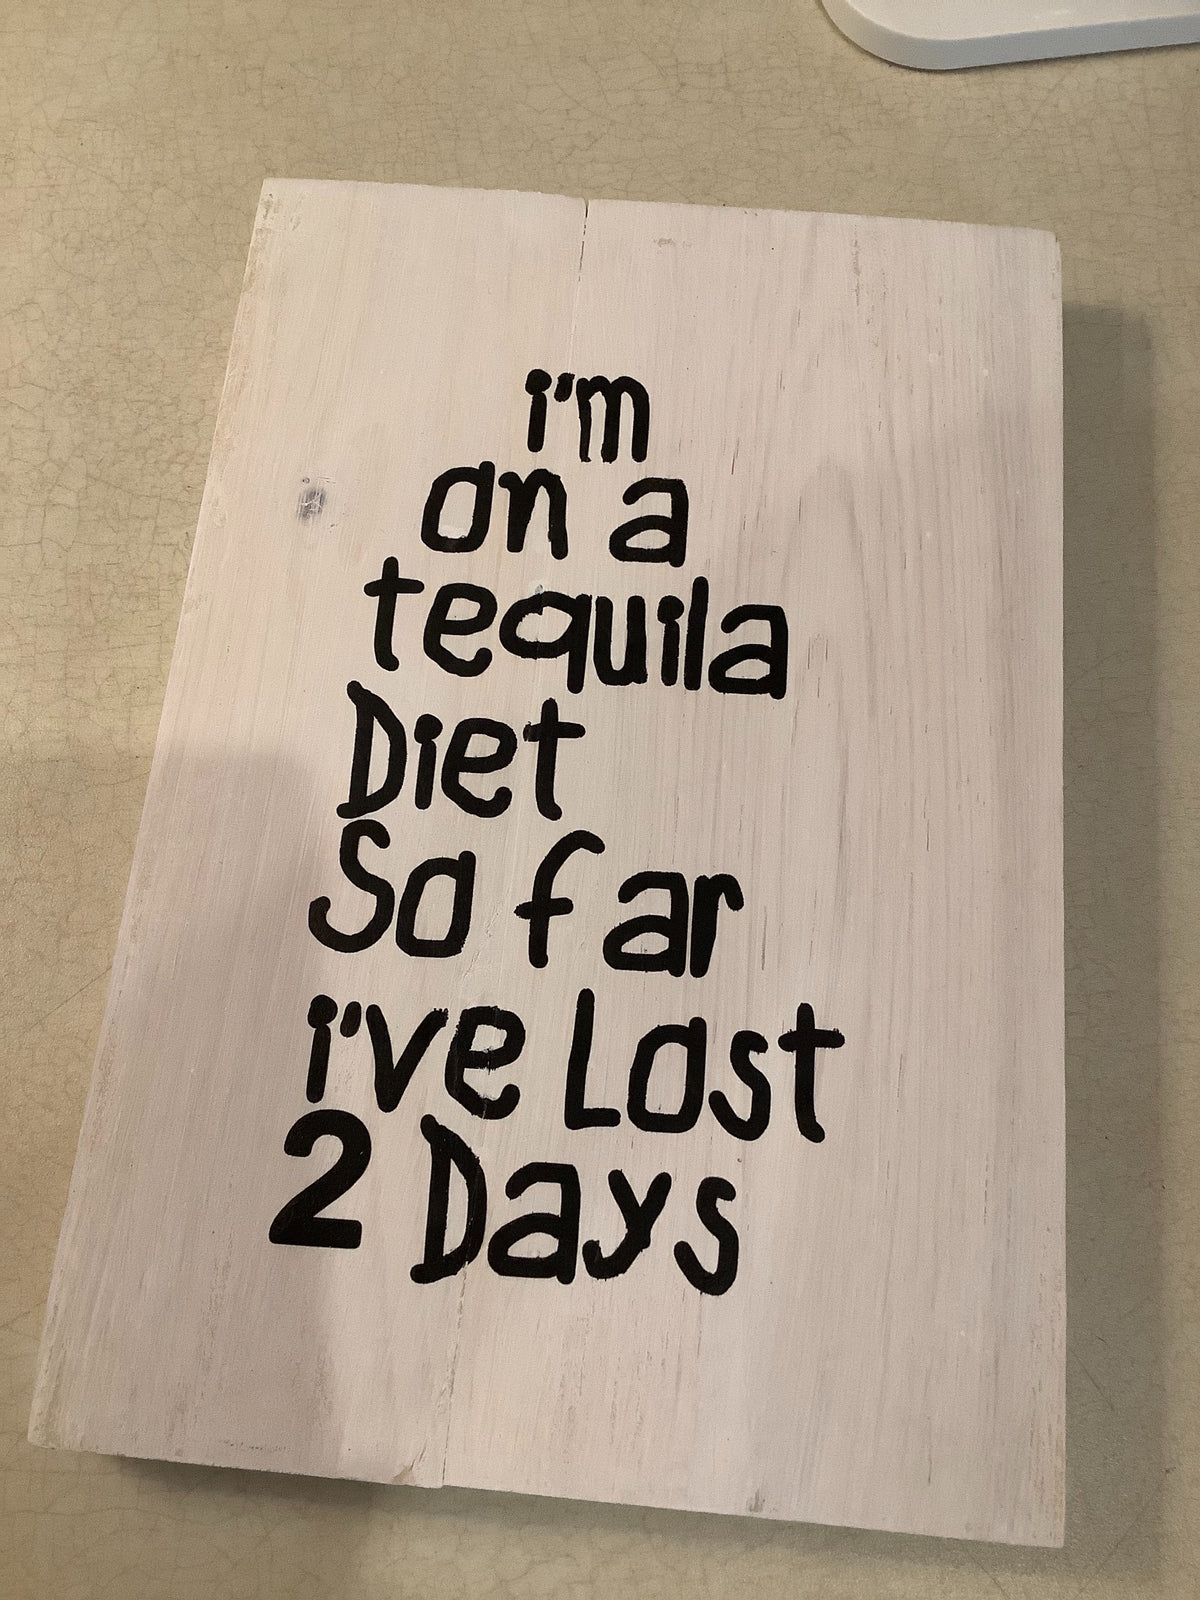 Funny wood sign - I'm on a tequila diet